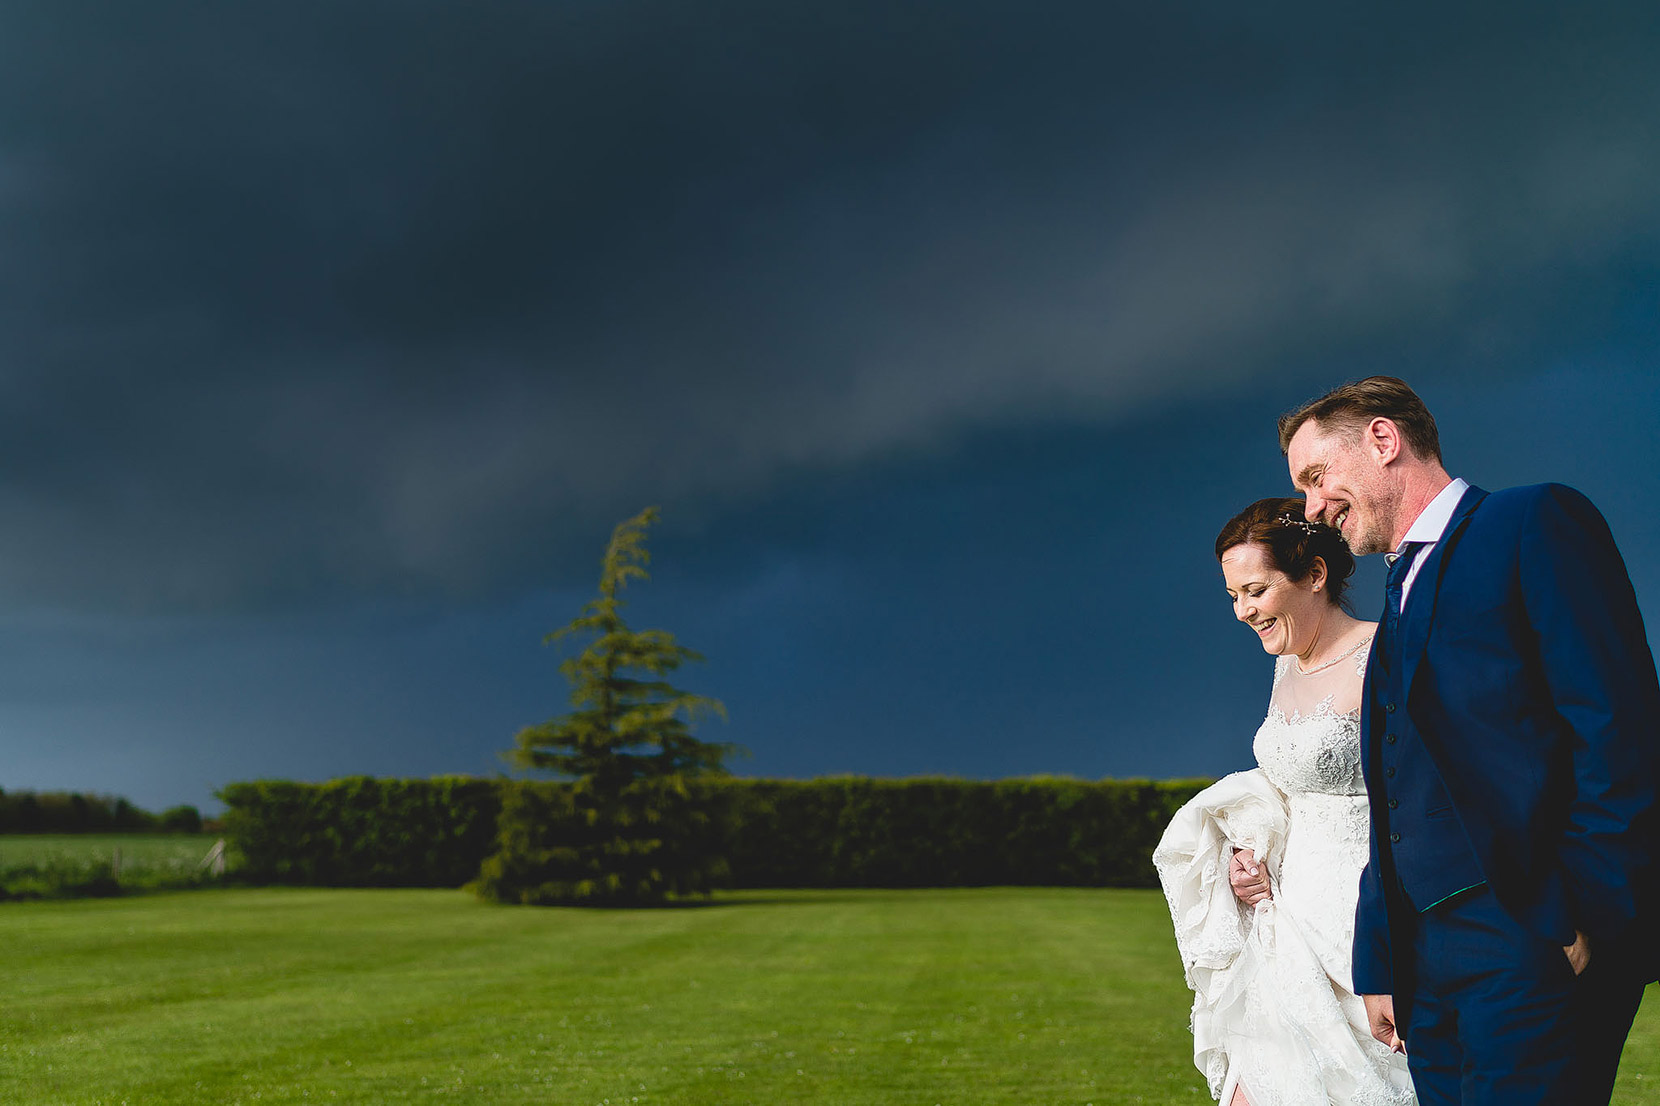 carl and paul walking out to get some bridal portaits on their wedding day at elms barn with a very stormy sky